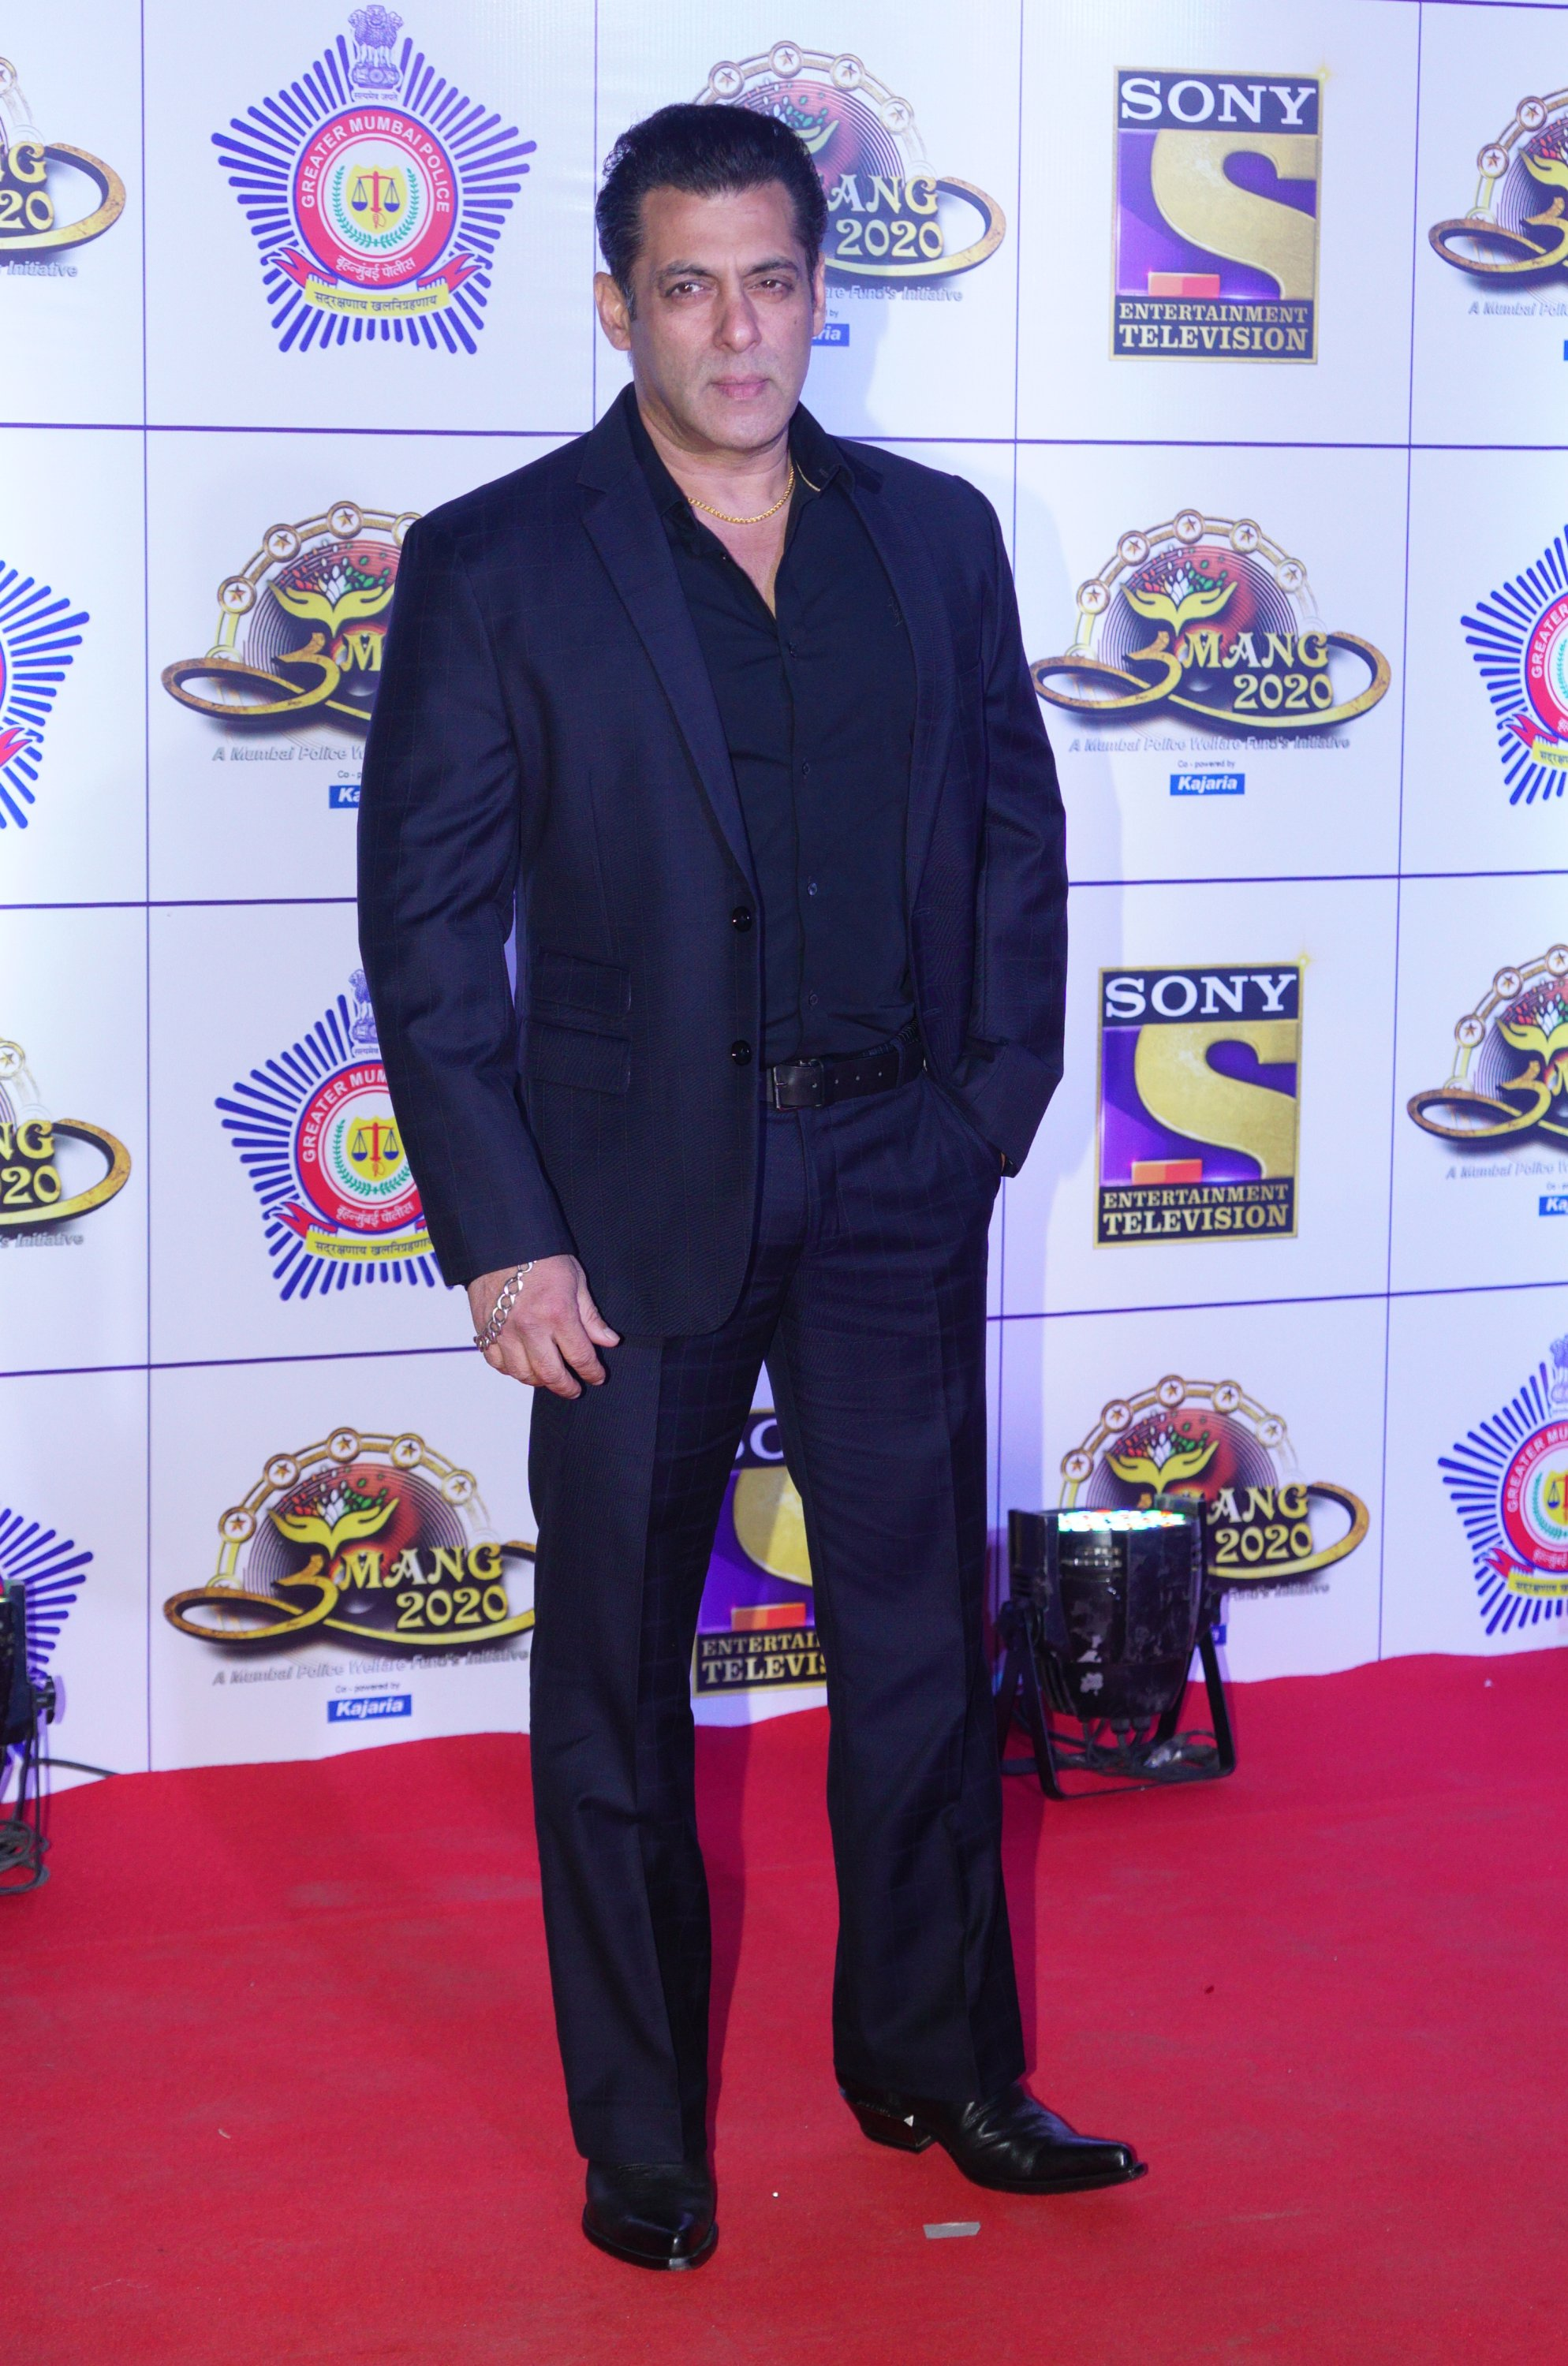 Salman Khan attends the 'Umang 2020' by Mumbai police welfare in Mumbai, India on Jan. 19, 2020. (Getty Images Photo)